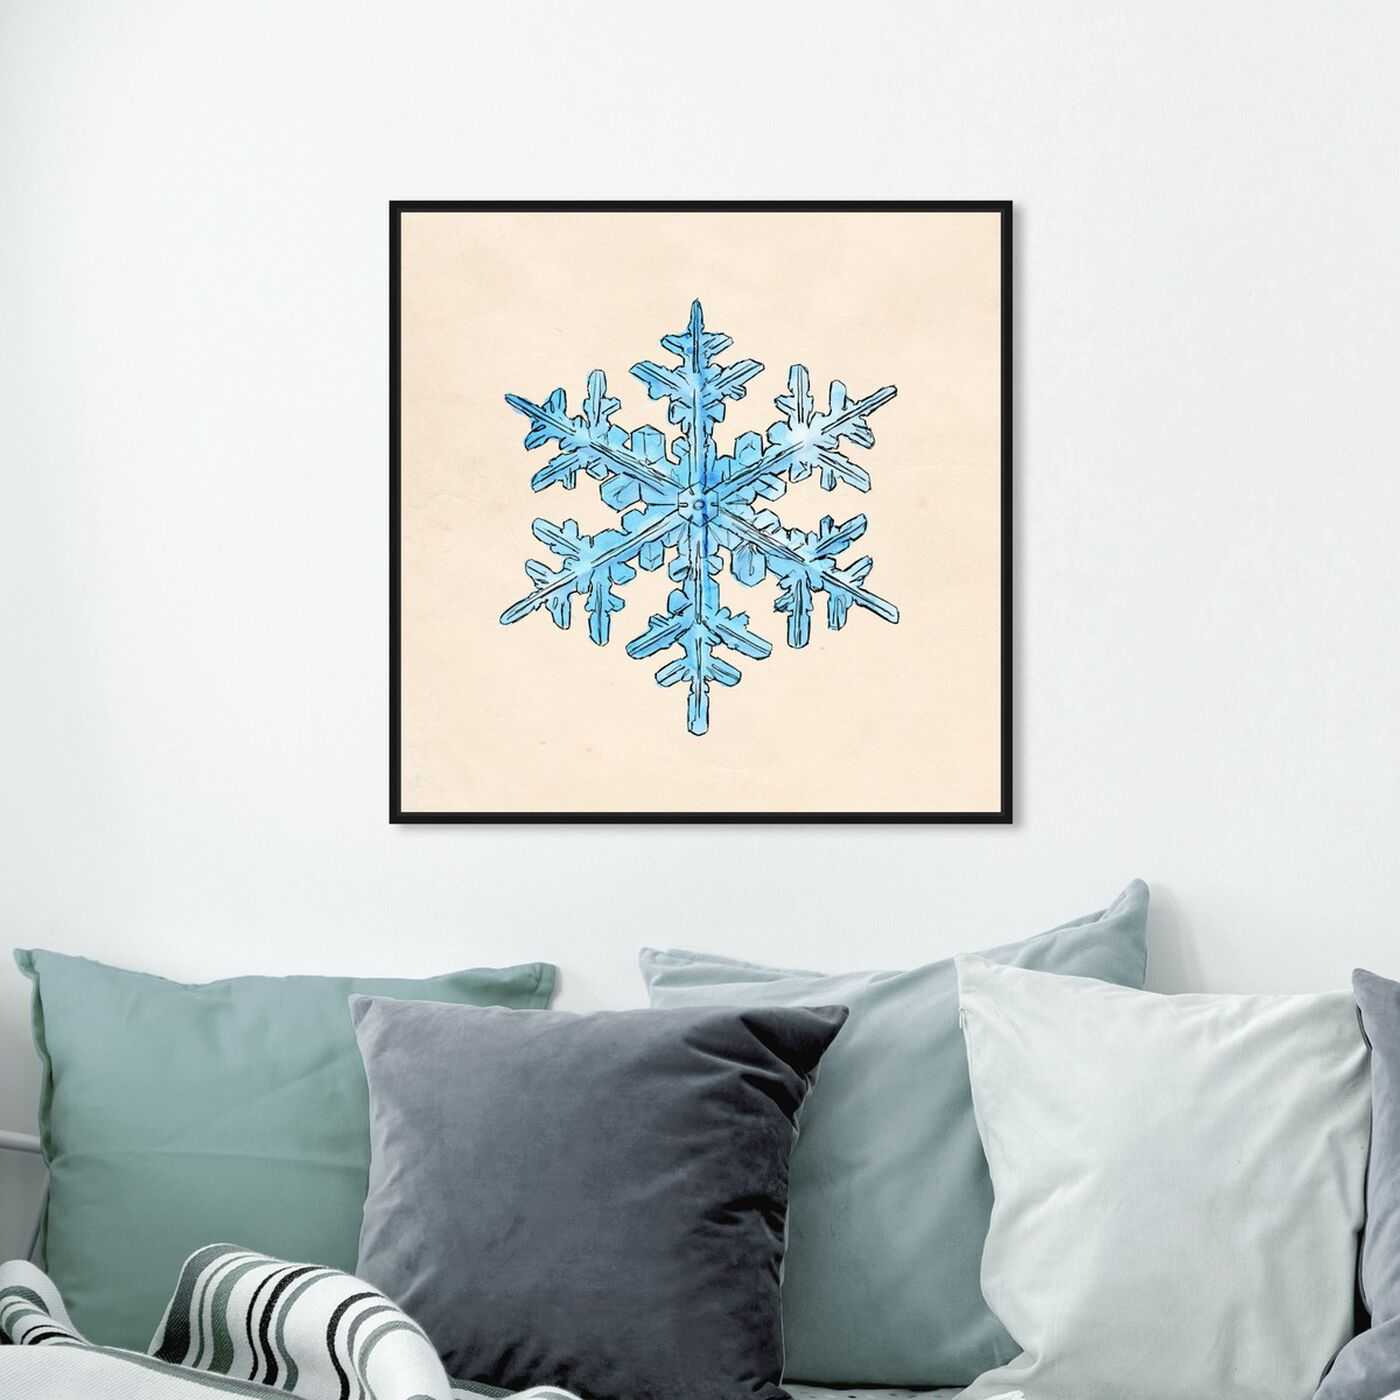 Hanging view of One of a Kind featuring holiday and seasonal and seasons art.